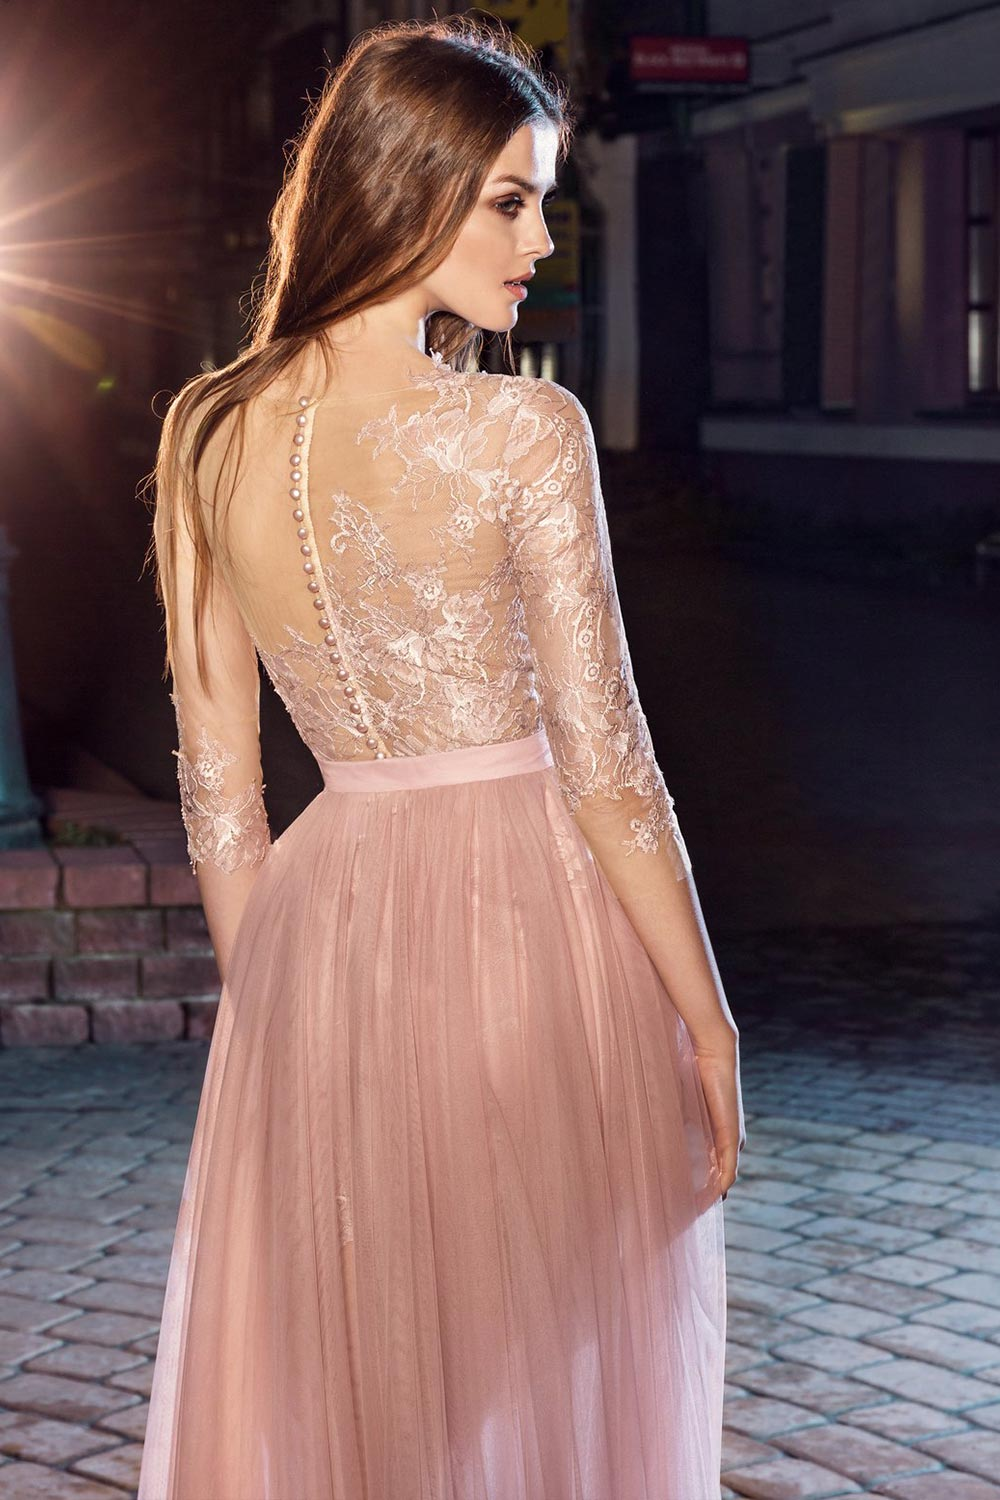 Style #207, short fitted lace dress with illusion 3/4 sleeves and detachable skirt with a rose accent, available in pink-ivory, ivory, black, cool blue